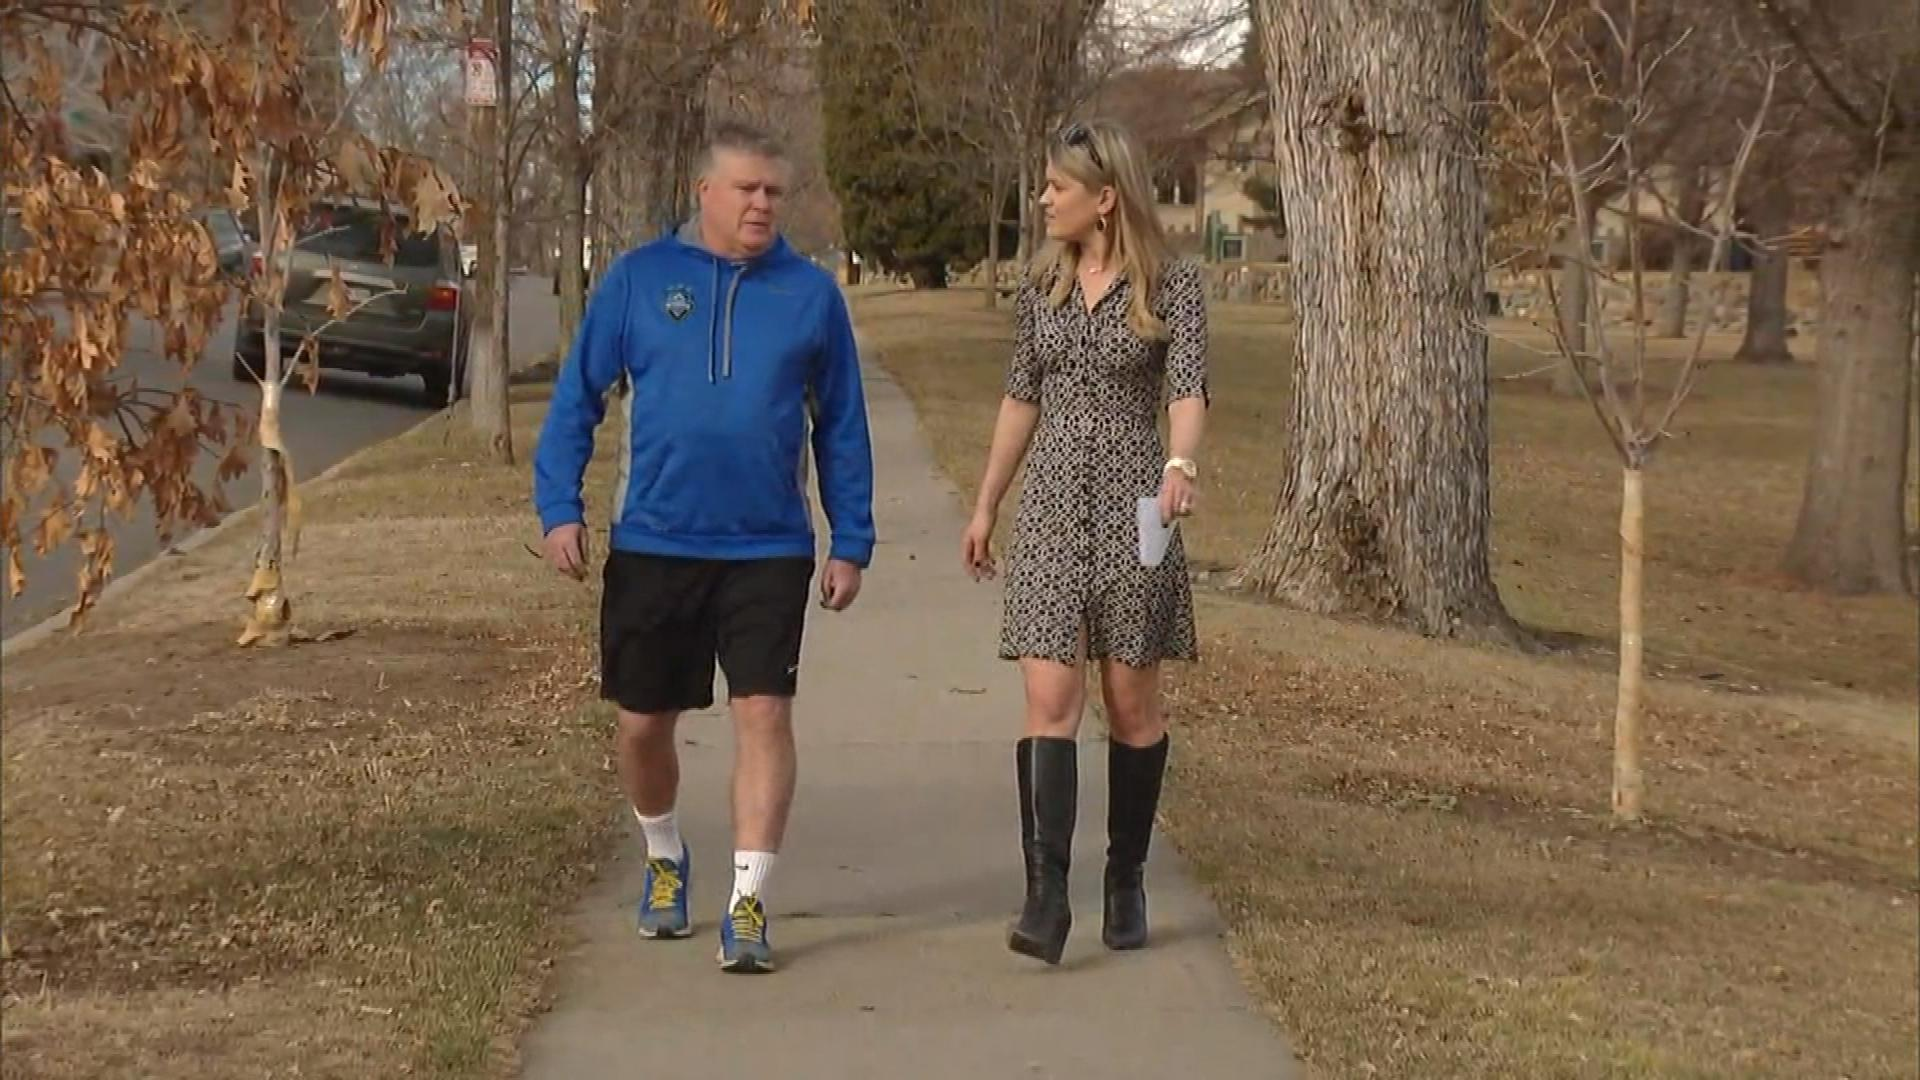 Marc Francis, a Colorado Storm Soccer coach, is interviewed by CBS4's Kelly Werthmann (credit: CBS)